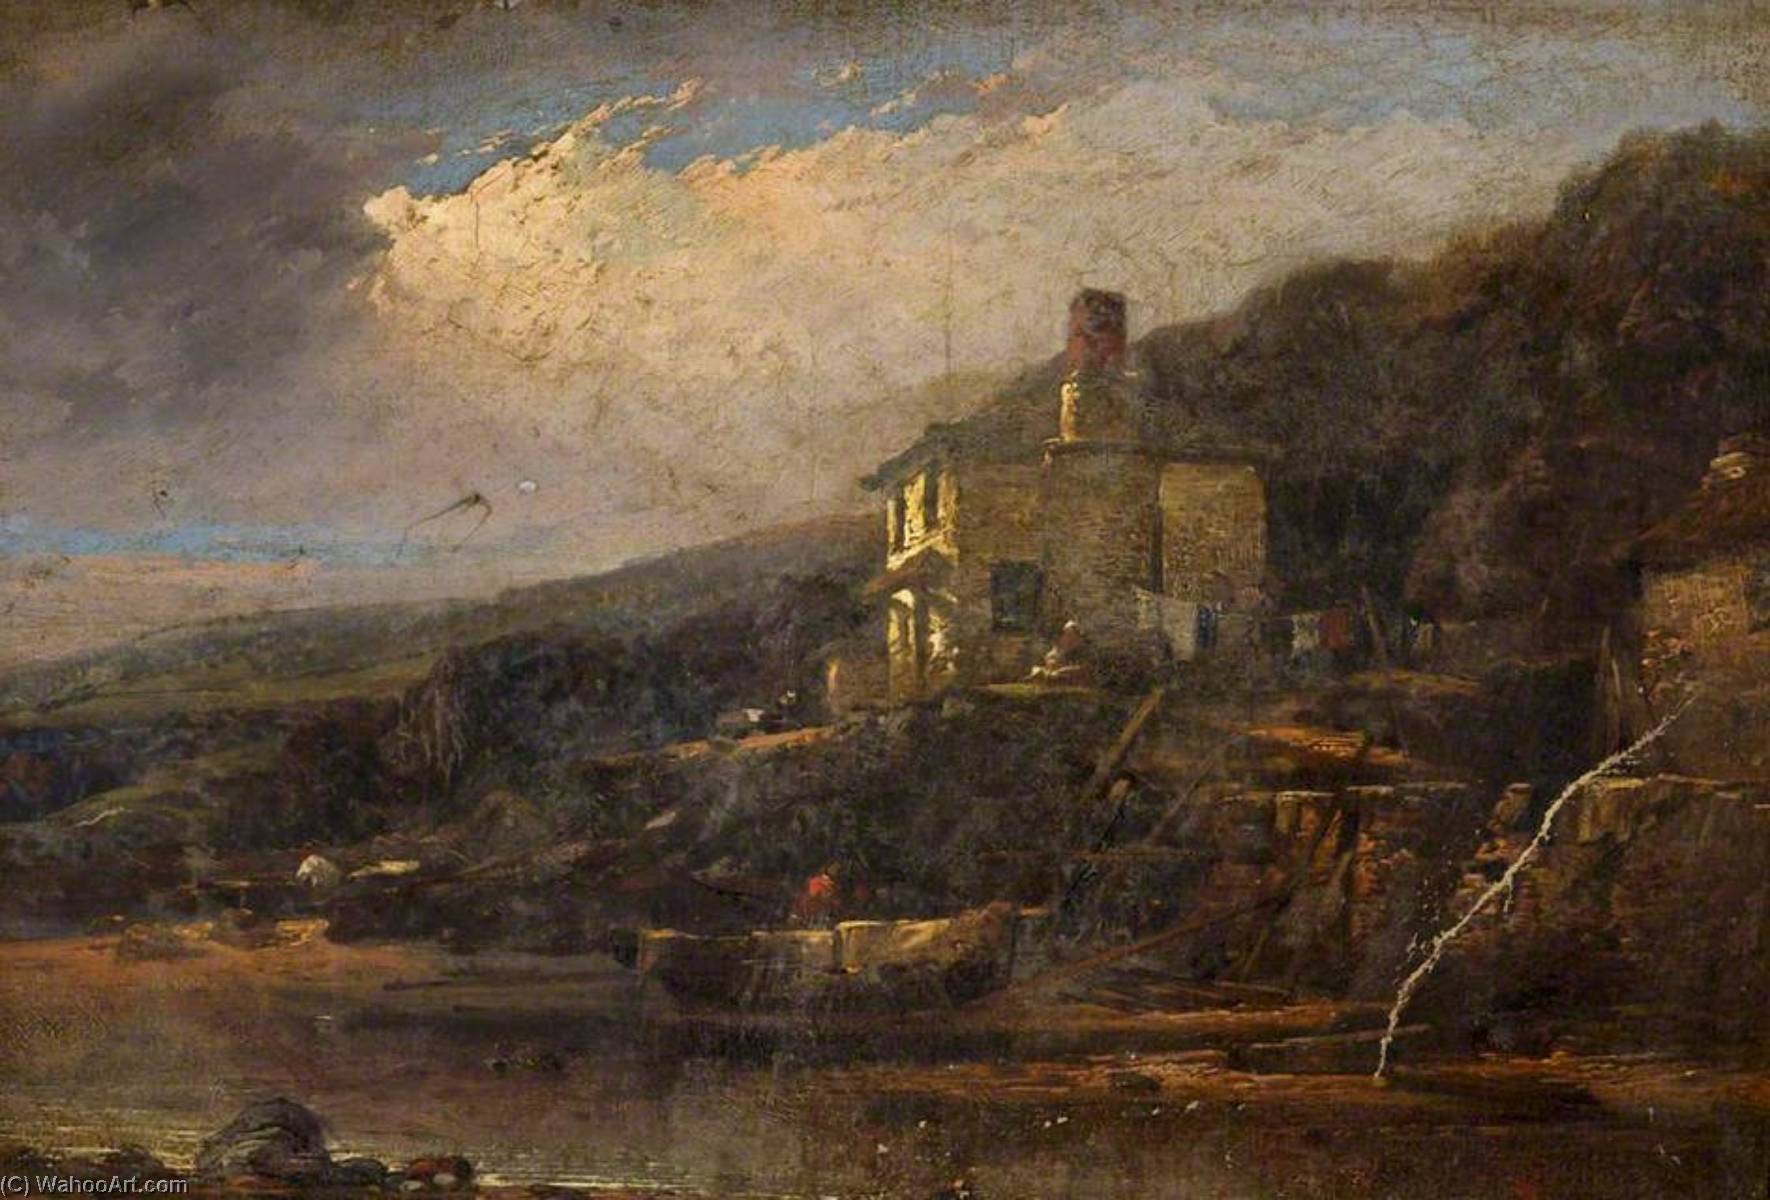 Fishing Cottage, Allsands, South Devon, 1856 by William Pitt | Oil Painting | WahooArt.com